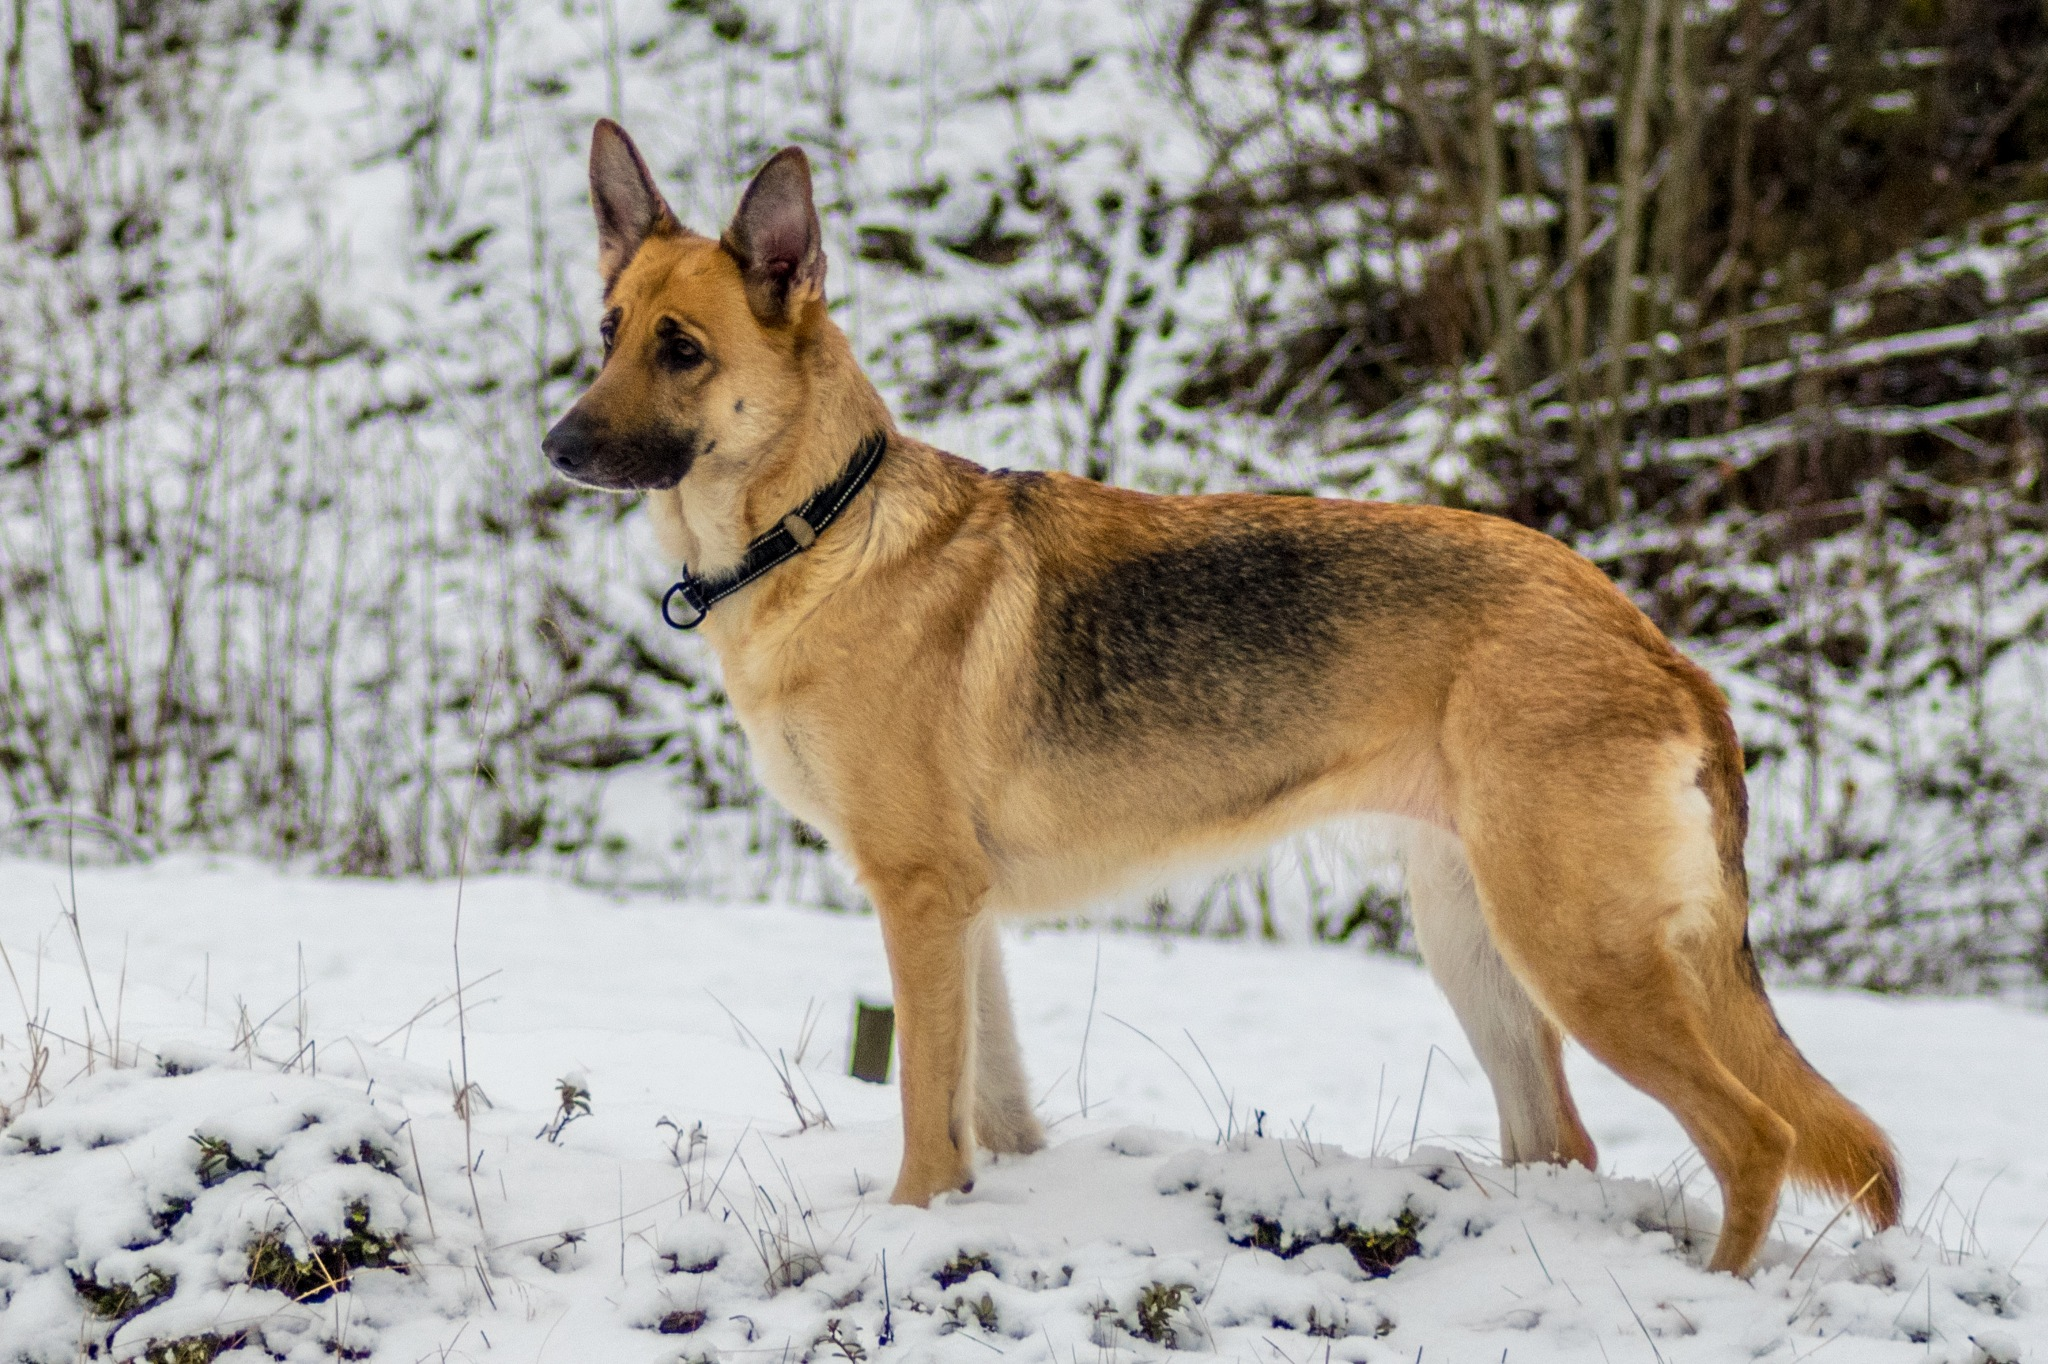 German shepherd by Pierre_von_Panajott